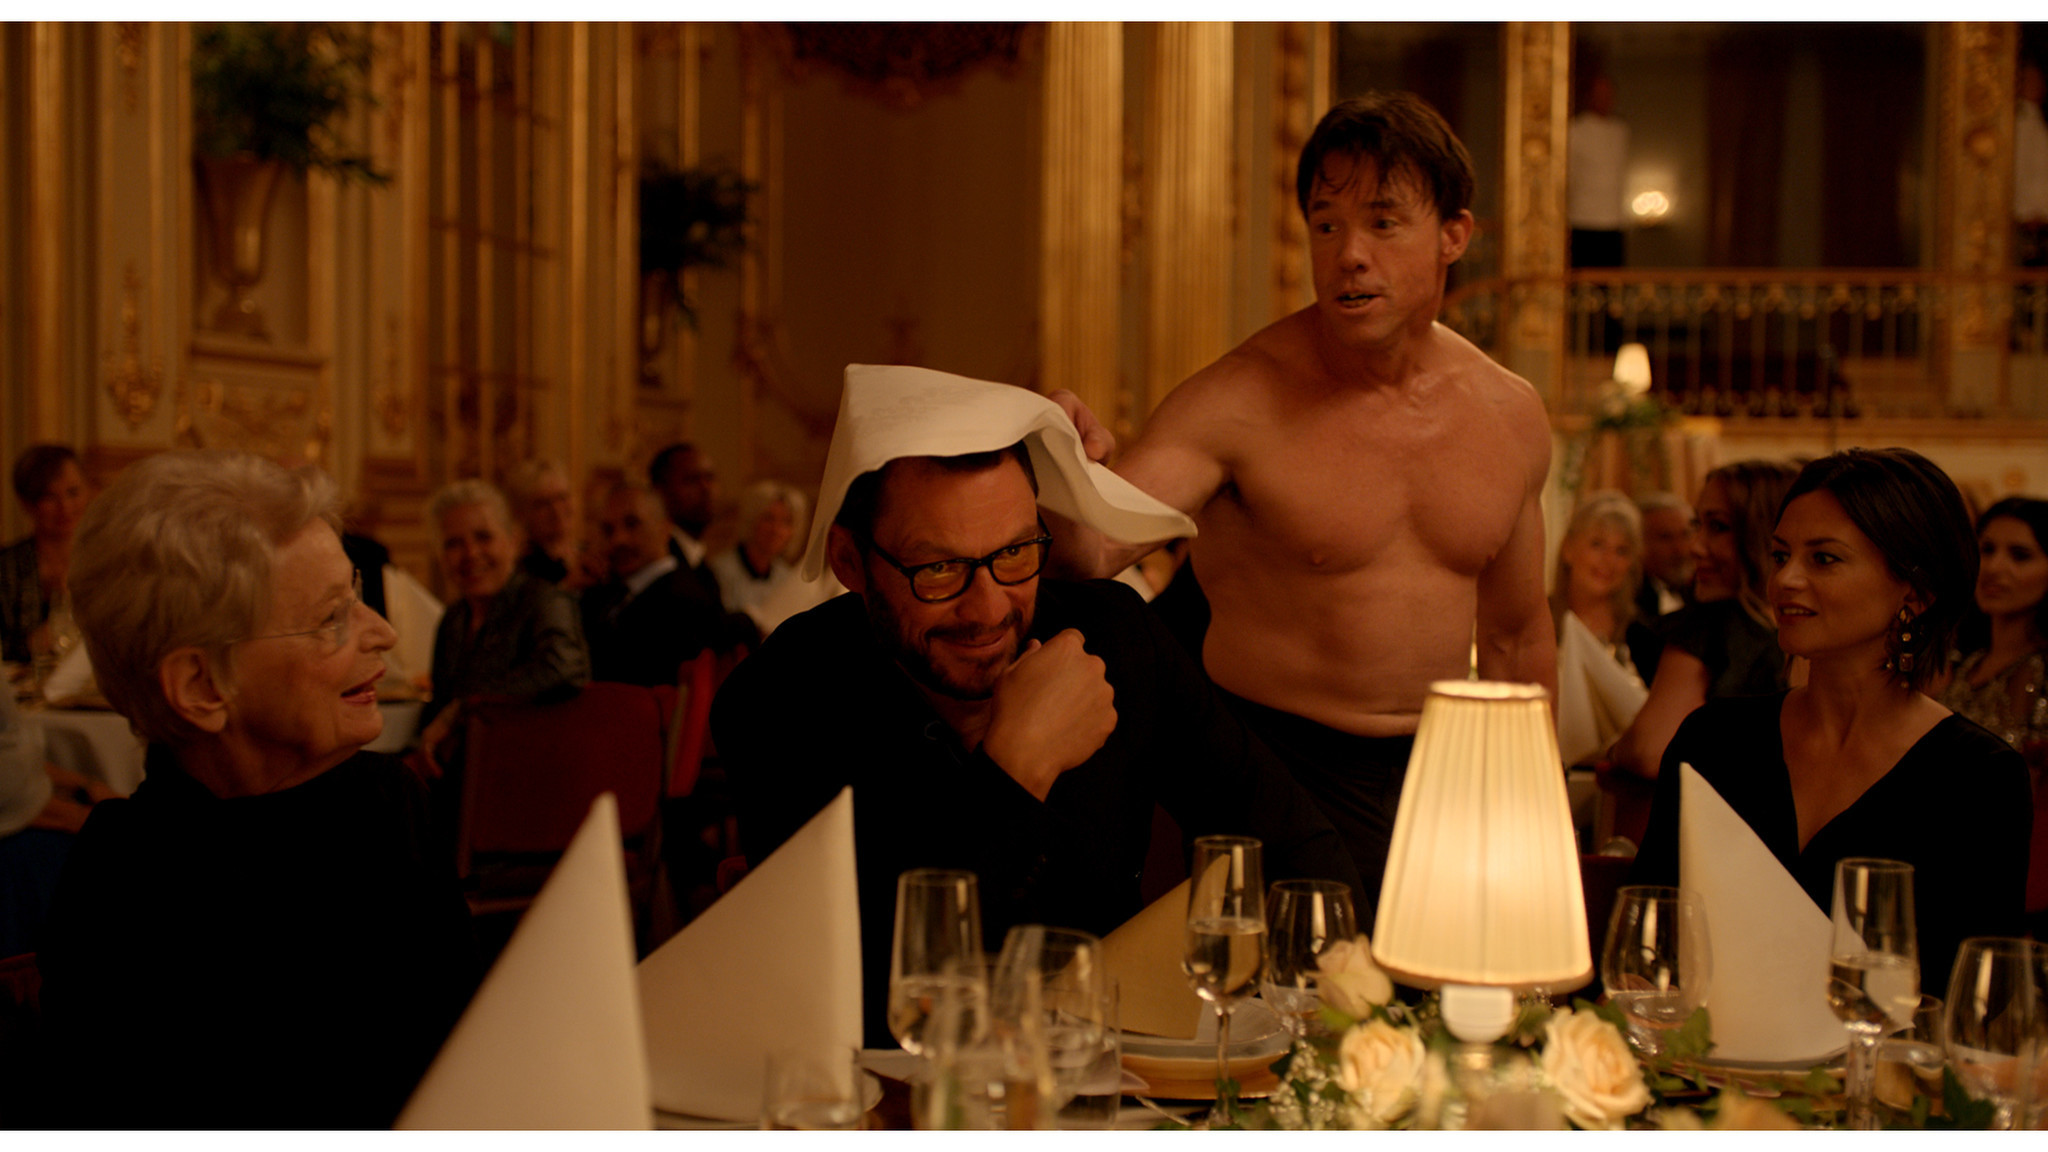 (L-R)- Dominic West and Terry Notary in a scene from